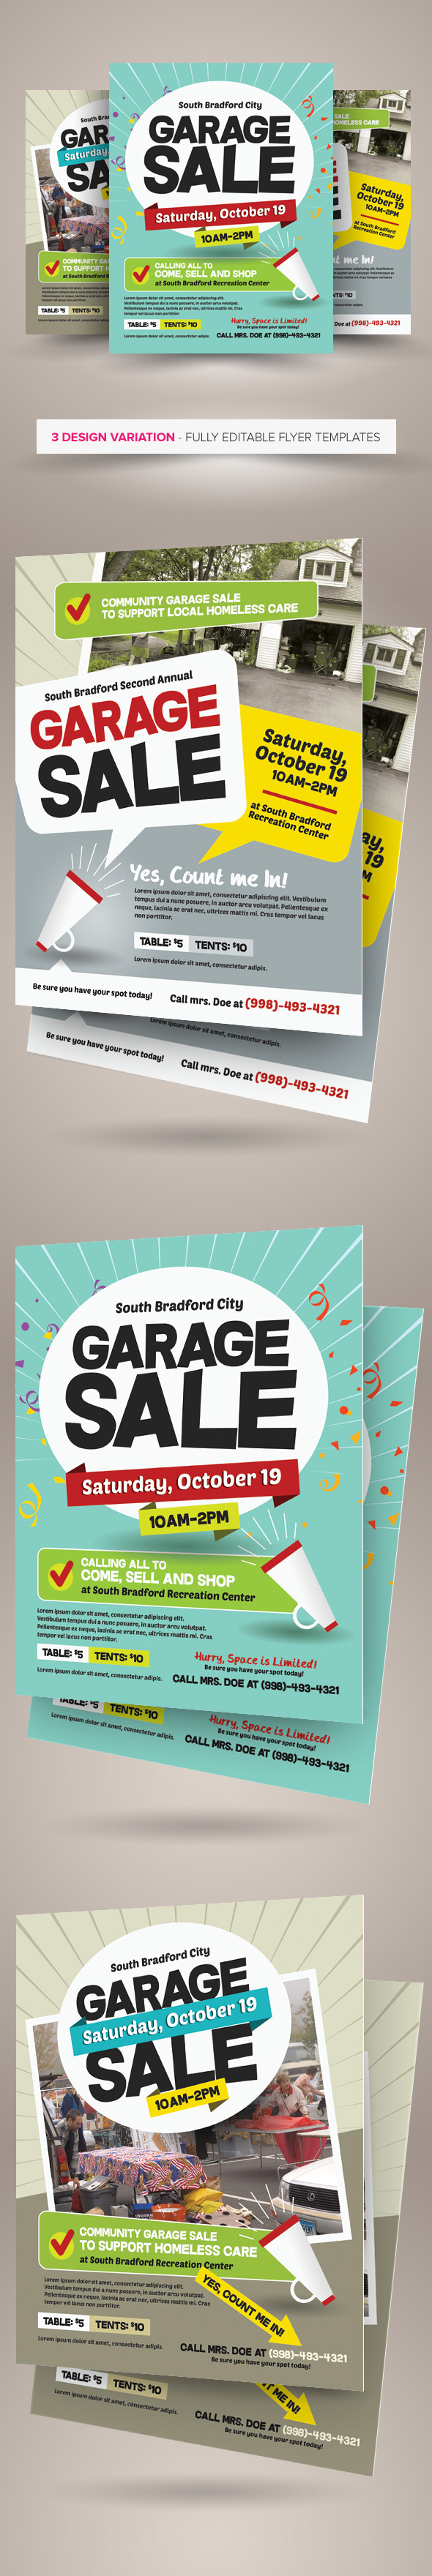 garage flyer templates on behance garage flyer templates are design templates created for on graphic river more info of the templates and how to get the sourcefiles can be found